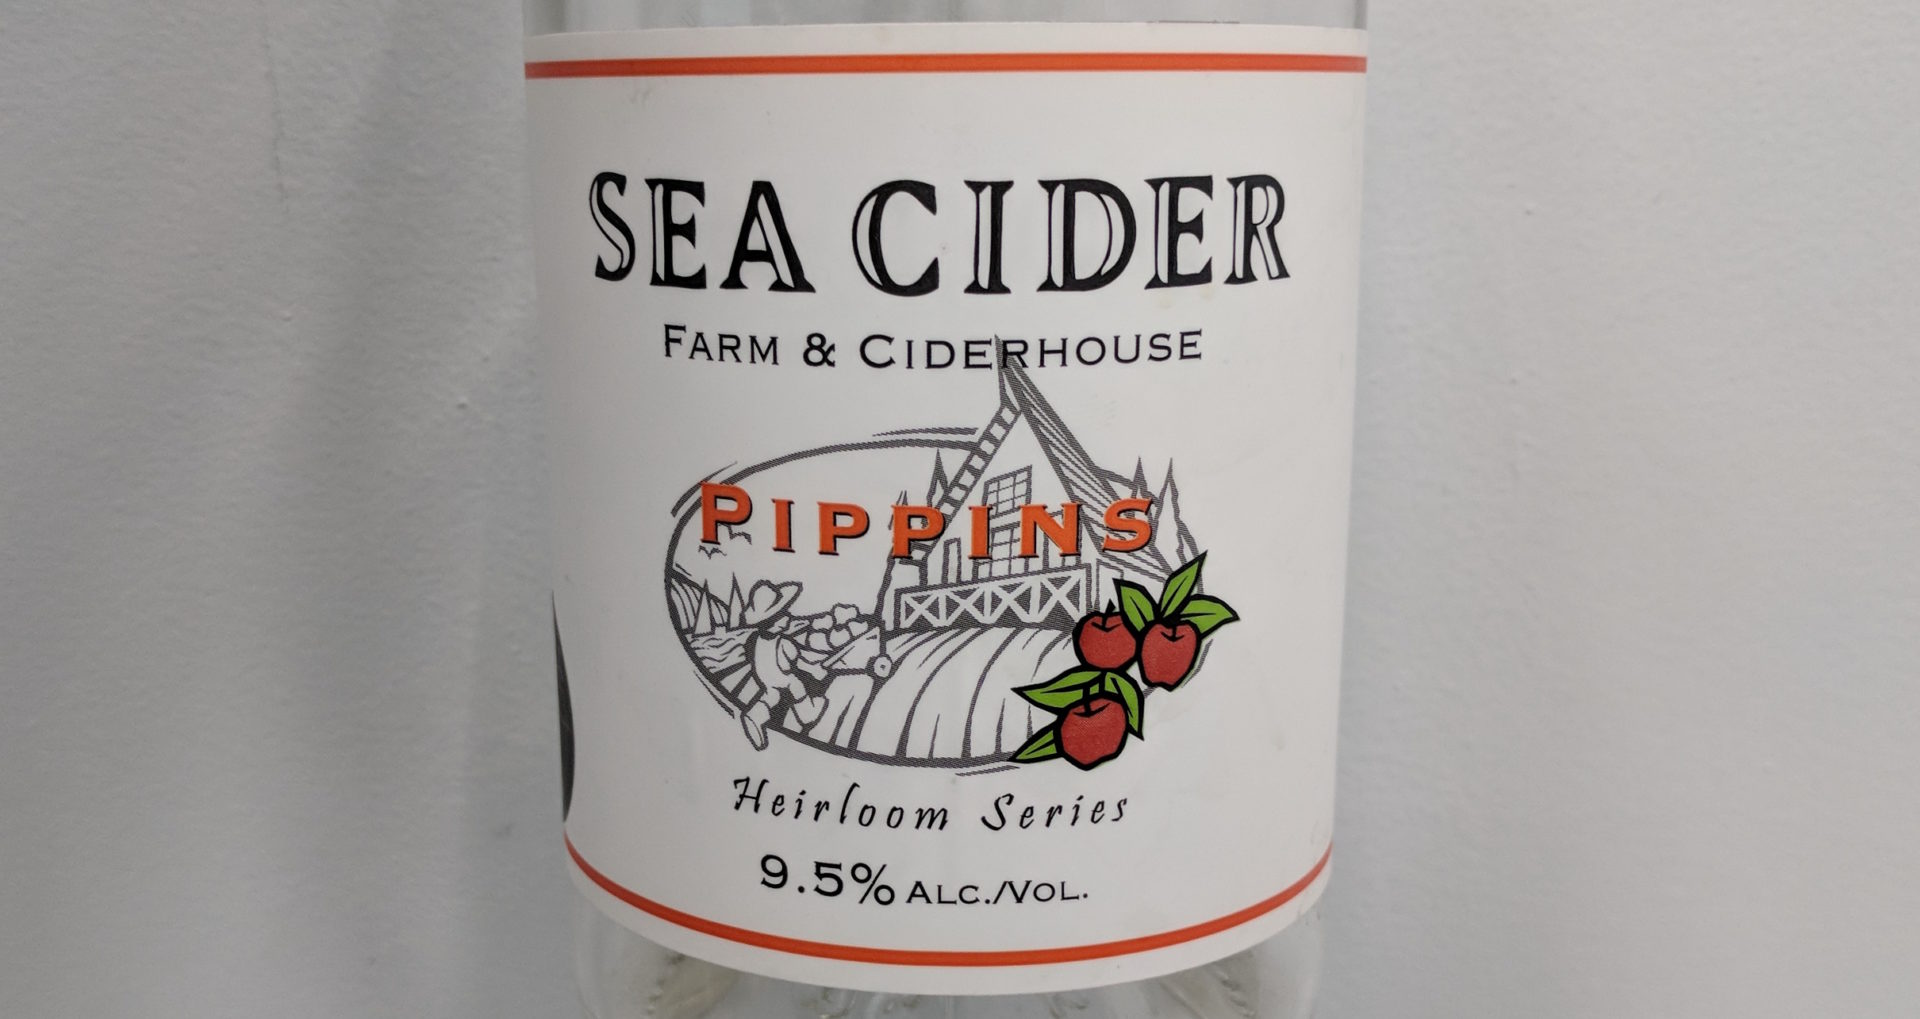 Sea Cider Farm & Ciderhouse Pippins